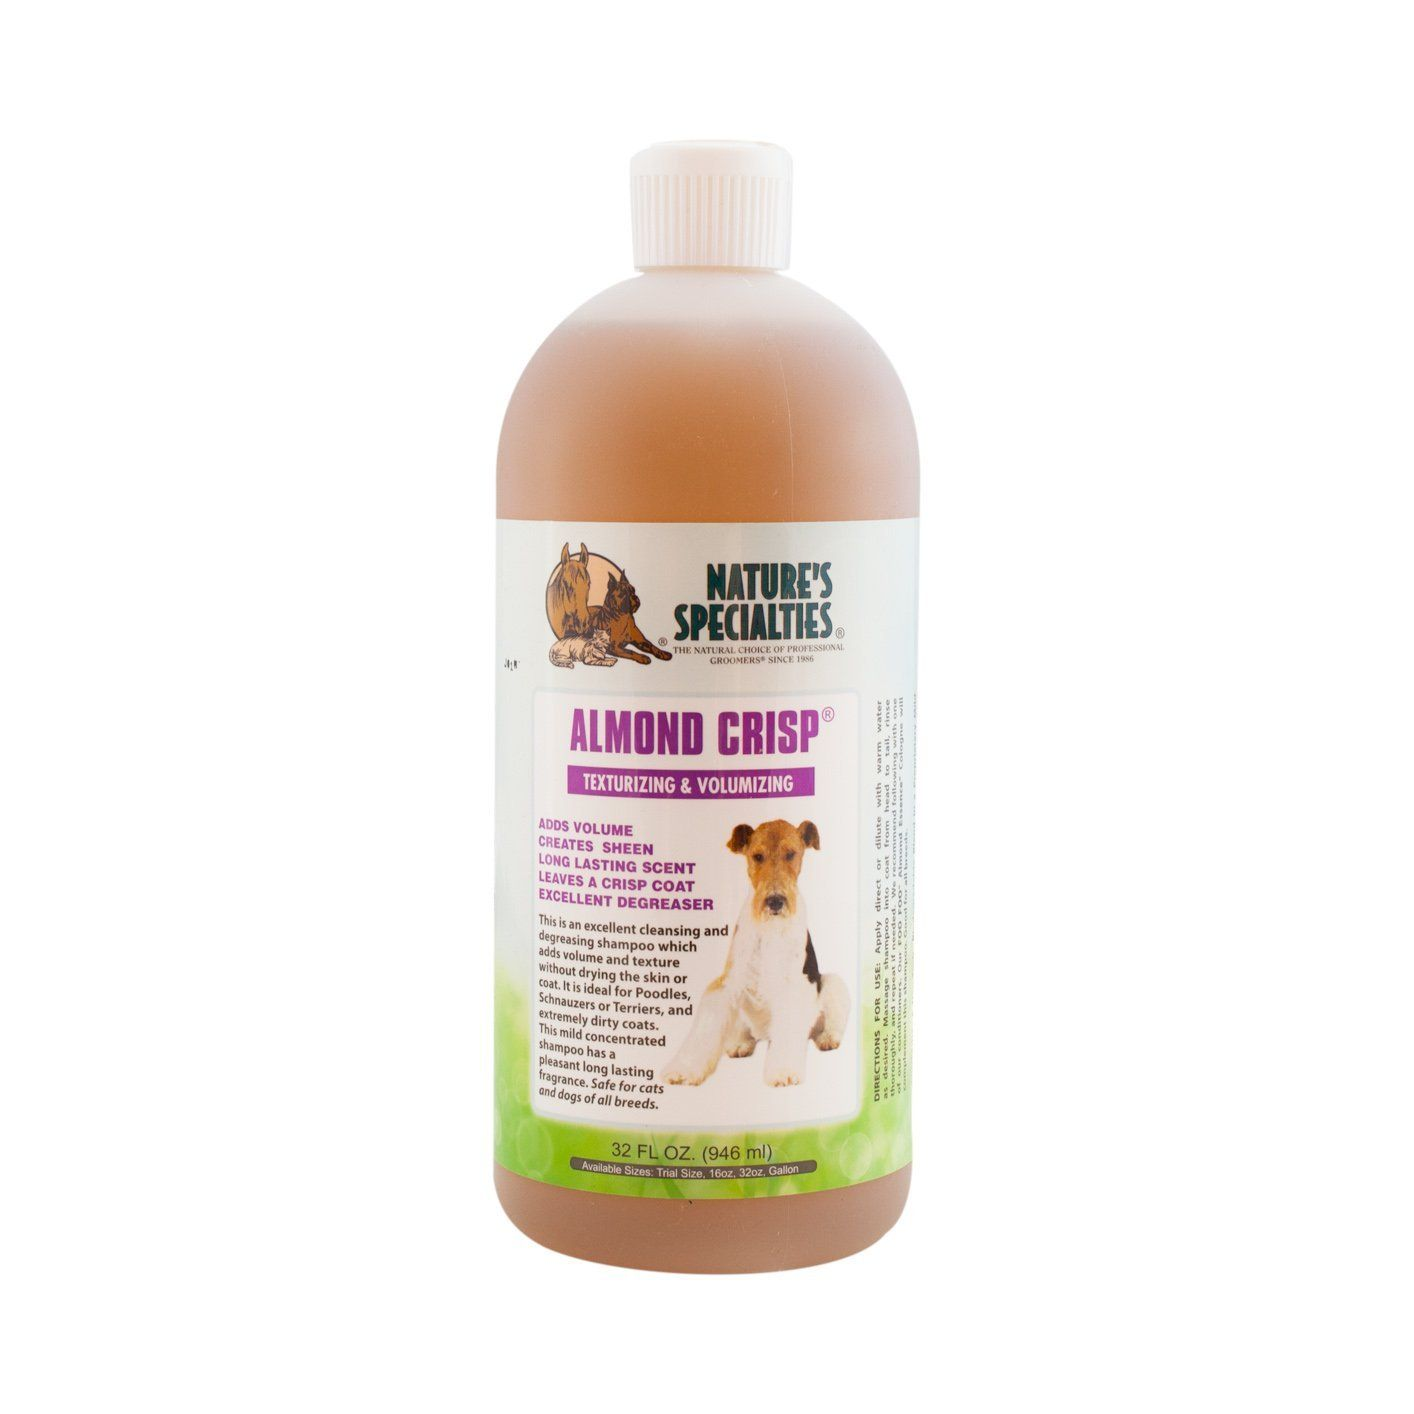 Nature S Specialties Almond Crisp Pet Shampoo 32 Ounce New And Awesome Dog Product Awaits You Read It N Pet Shampoo Dog Grooming Supplies Dog Food Storage